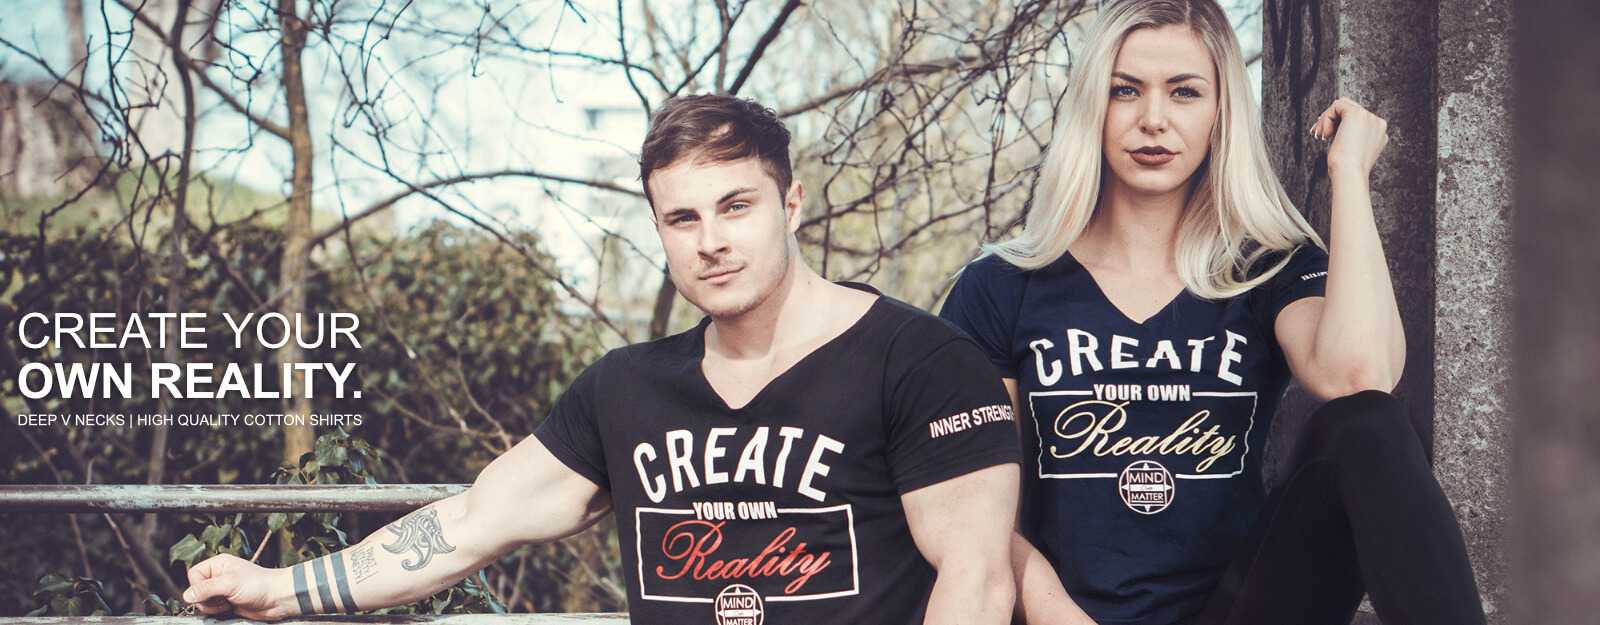 Create Your Own Reality Shirts Mind Over Matter. - Banner